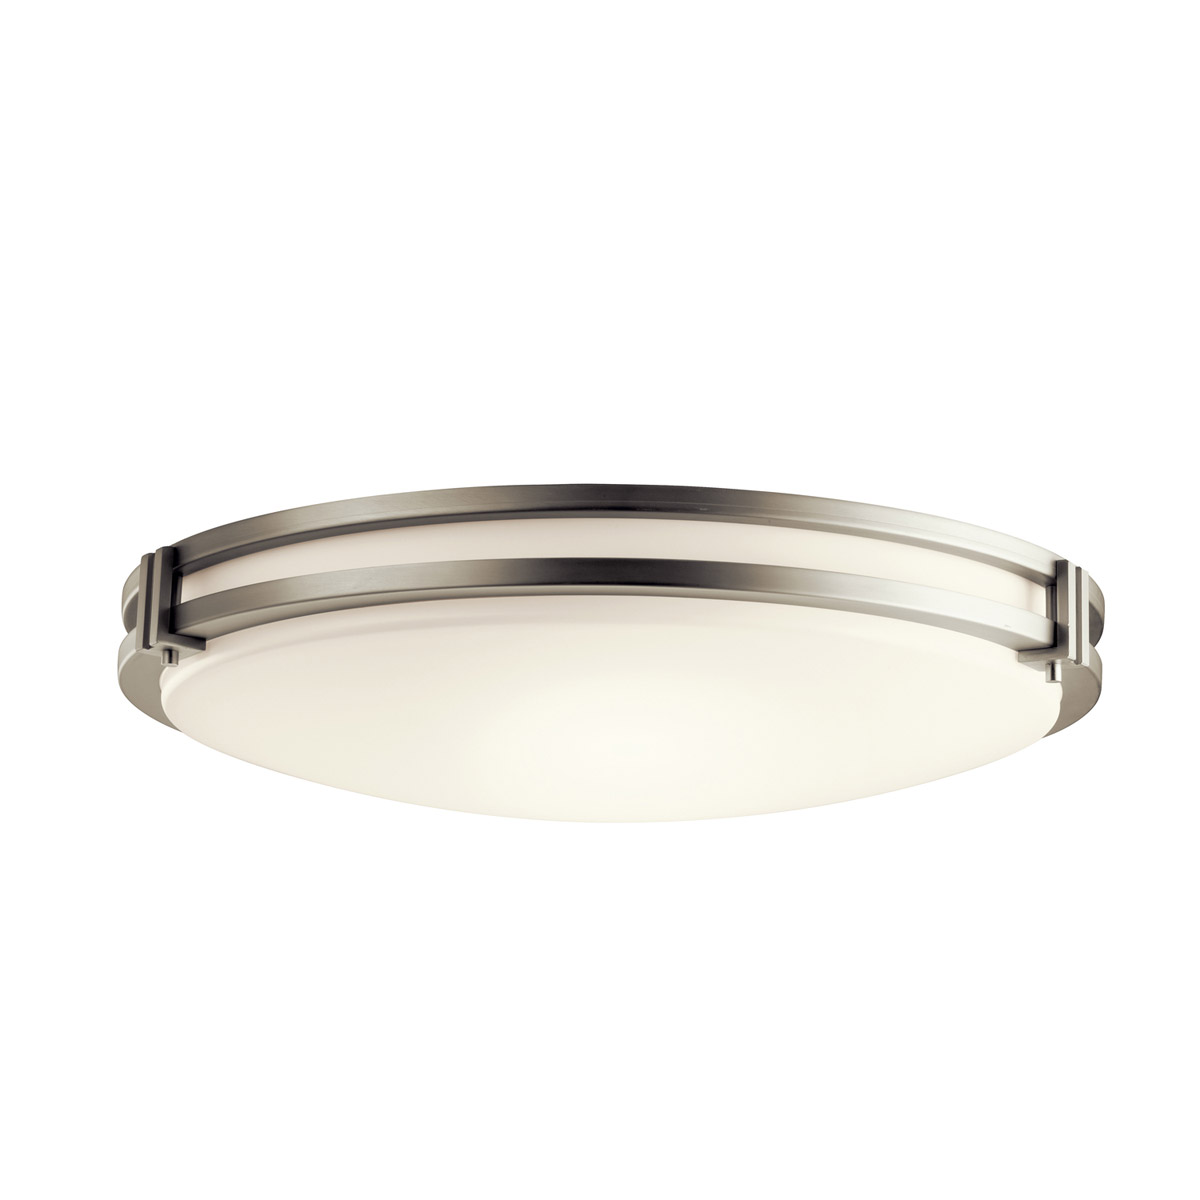 Kichler 10828NI Signature 3 Light 24 inch Brushed Nickel Flush Mount Ceiling Light photo thumbnail